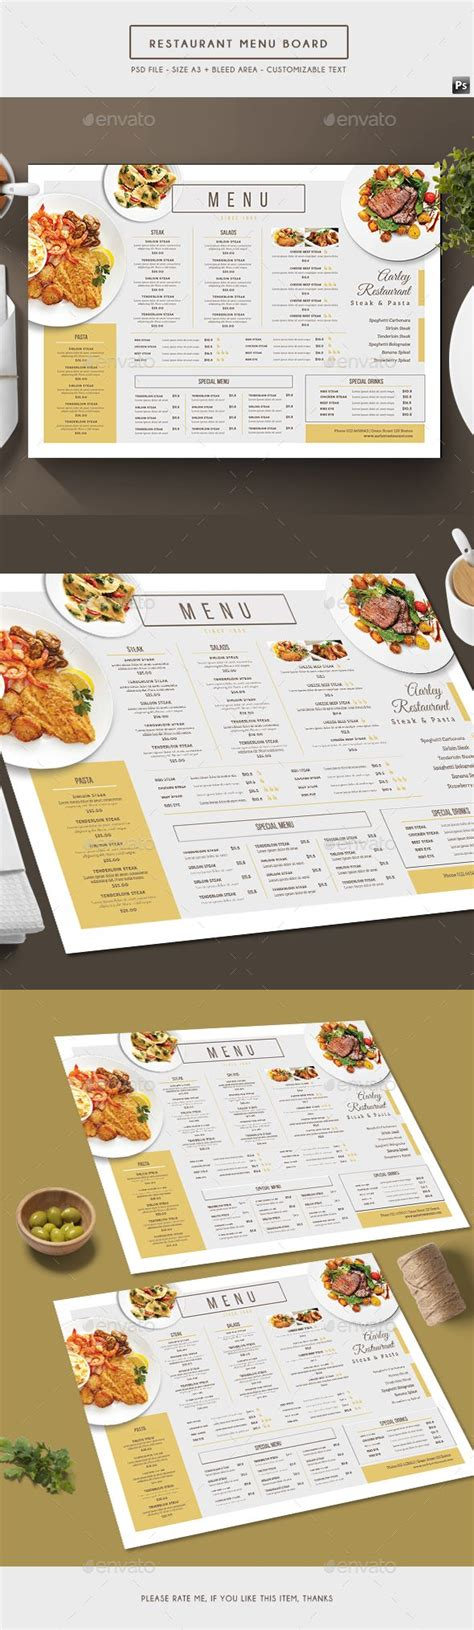 25 best ideas about restaurant menu boards on pinterest